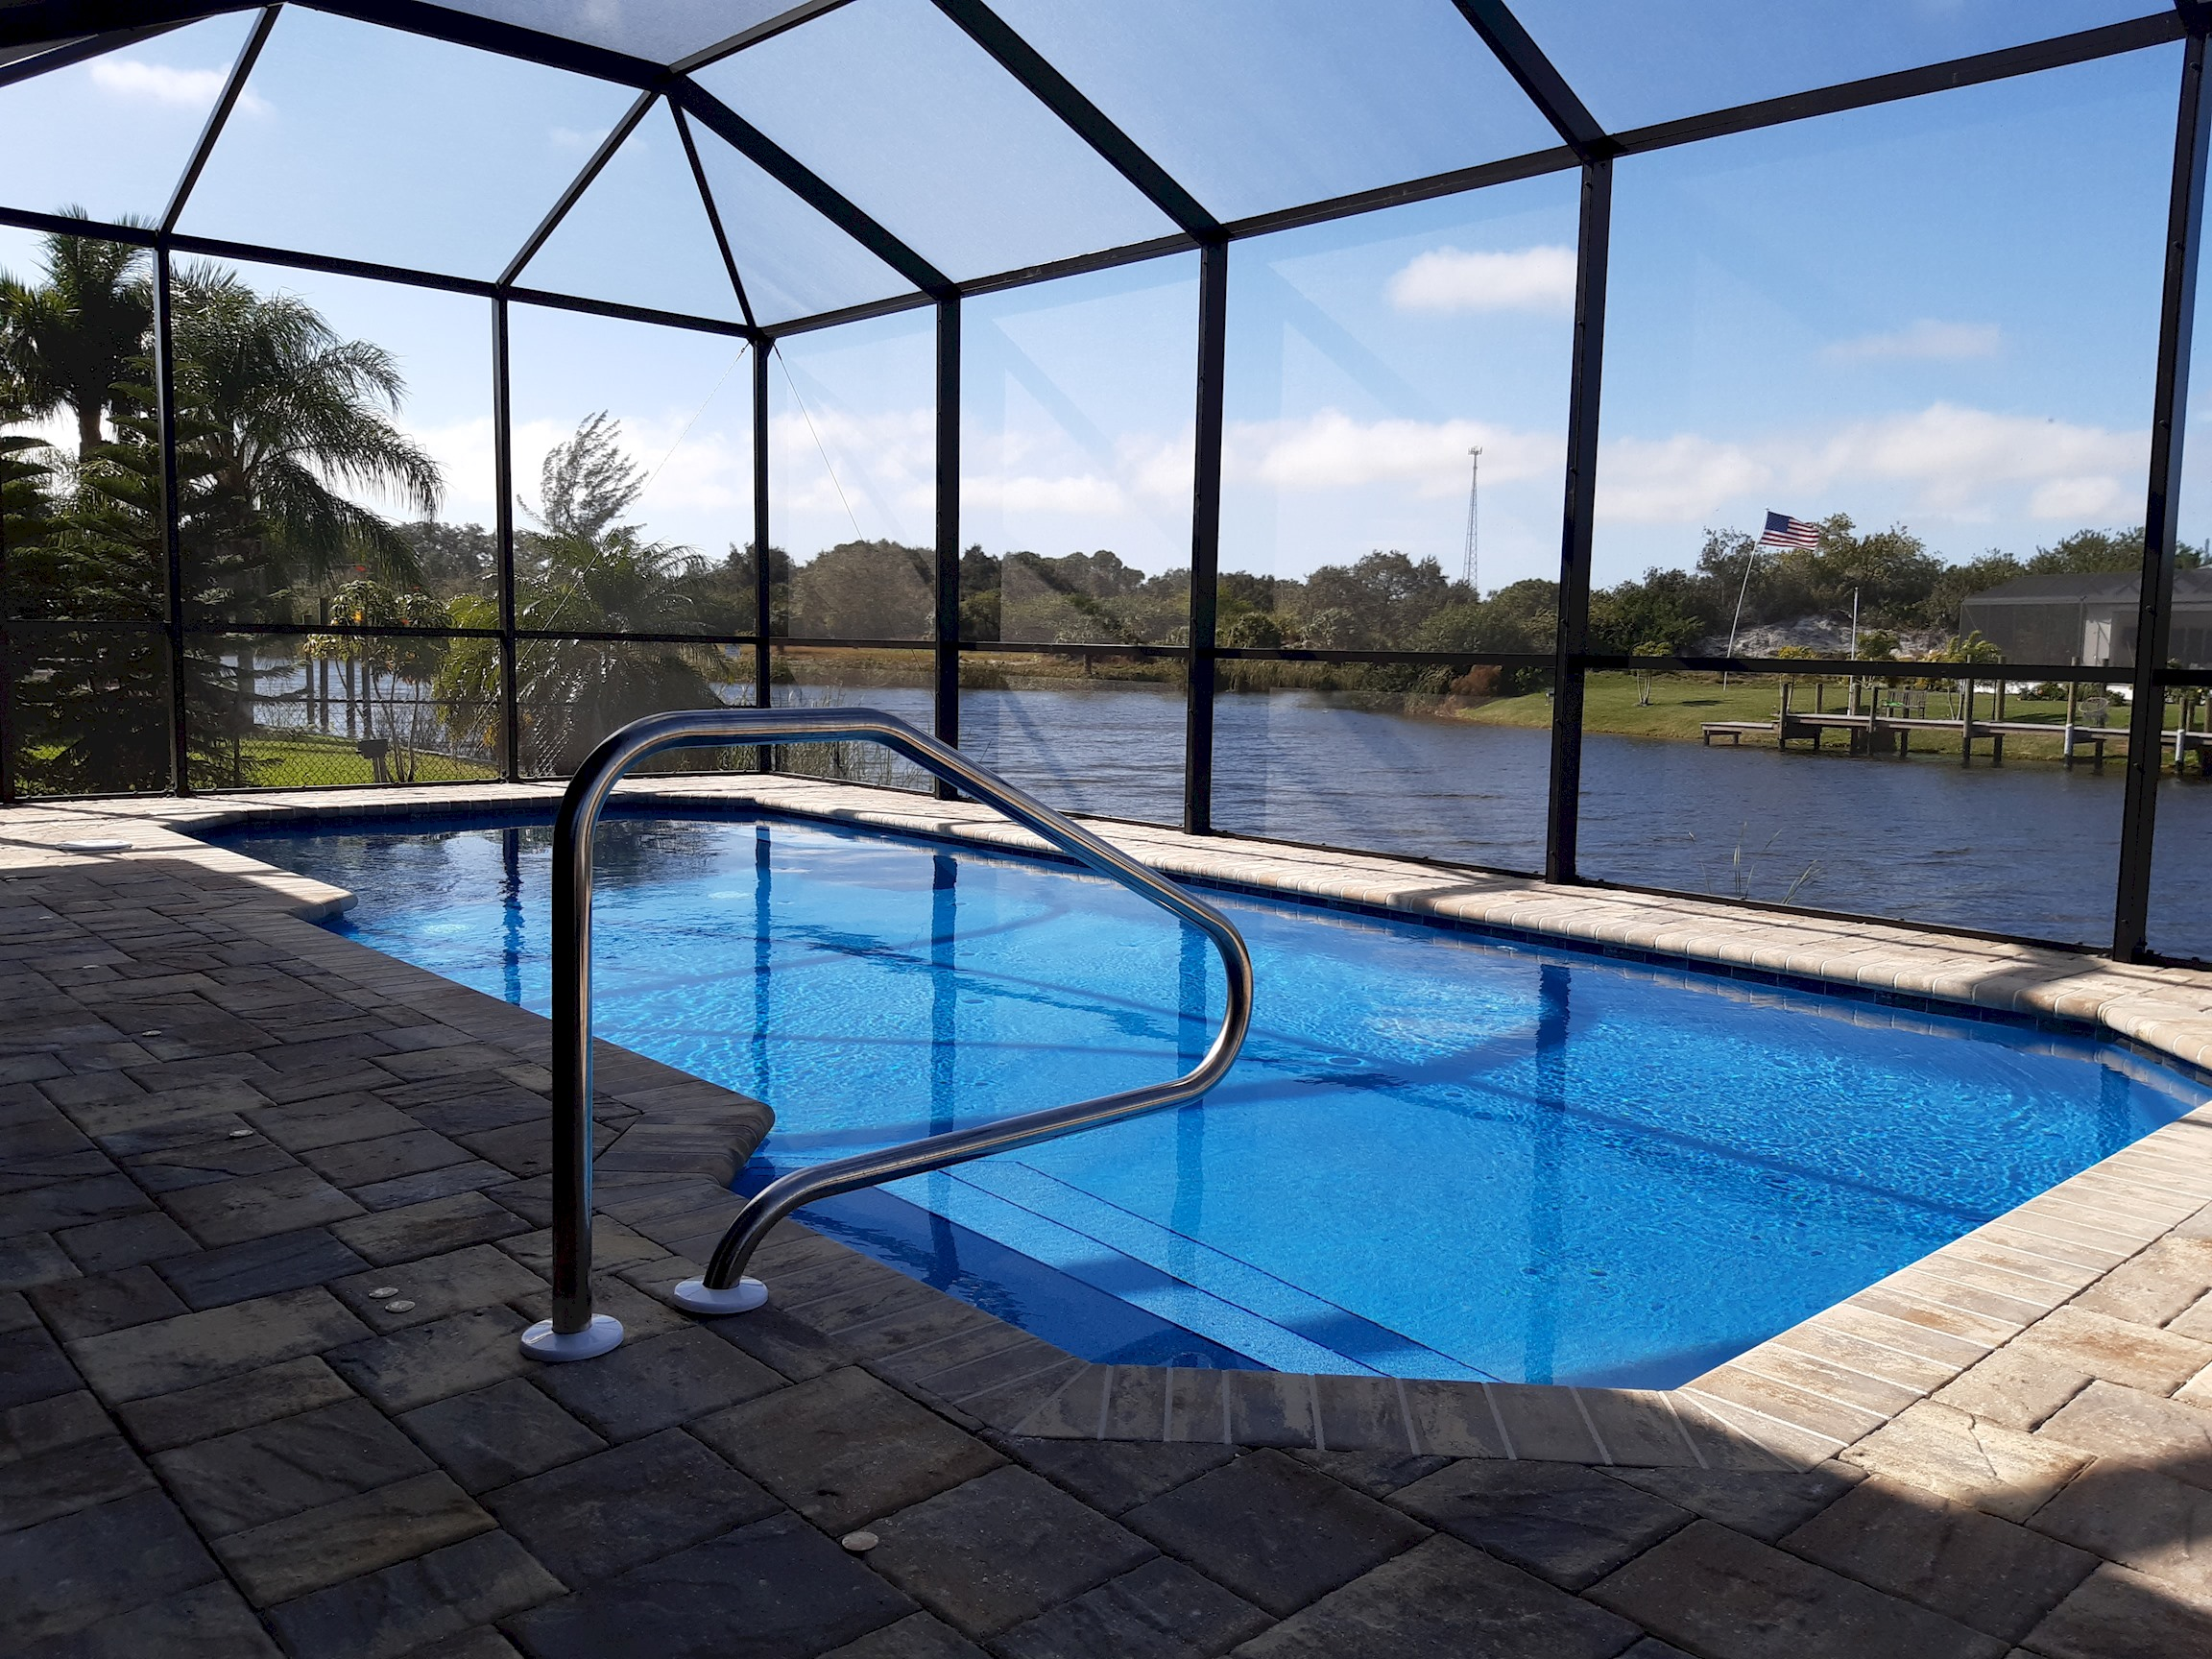 Stunning BRAND NEW 3 bed home, fabulous pool overlooking river,  photo 25100529